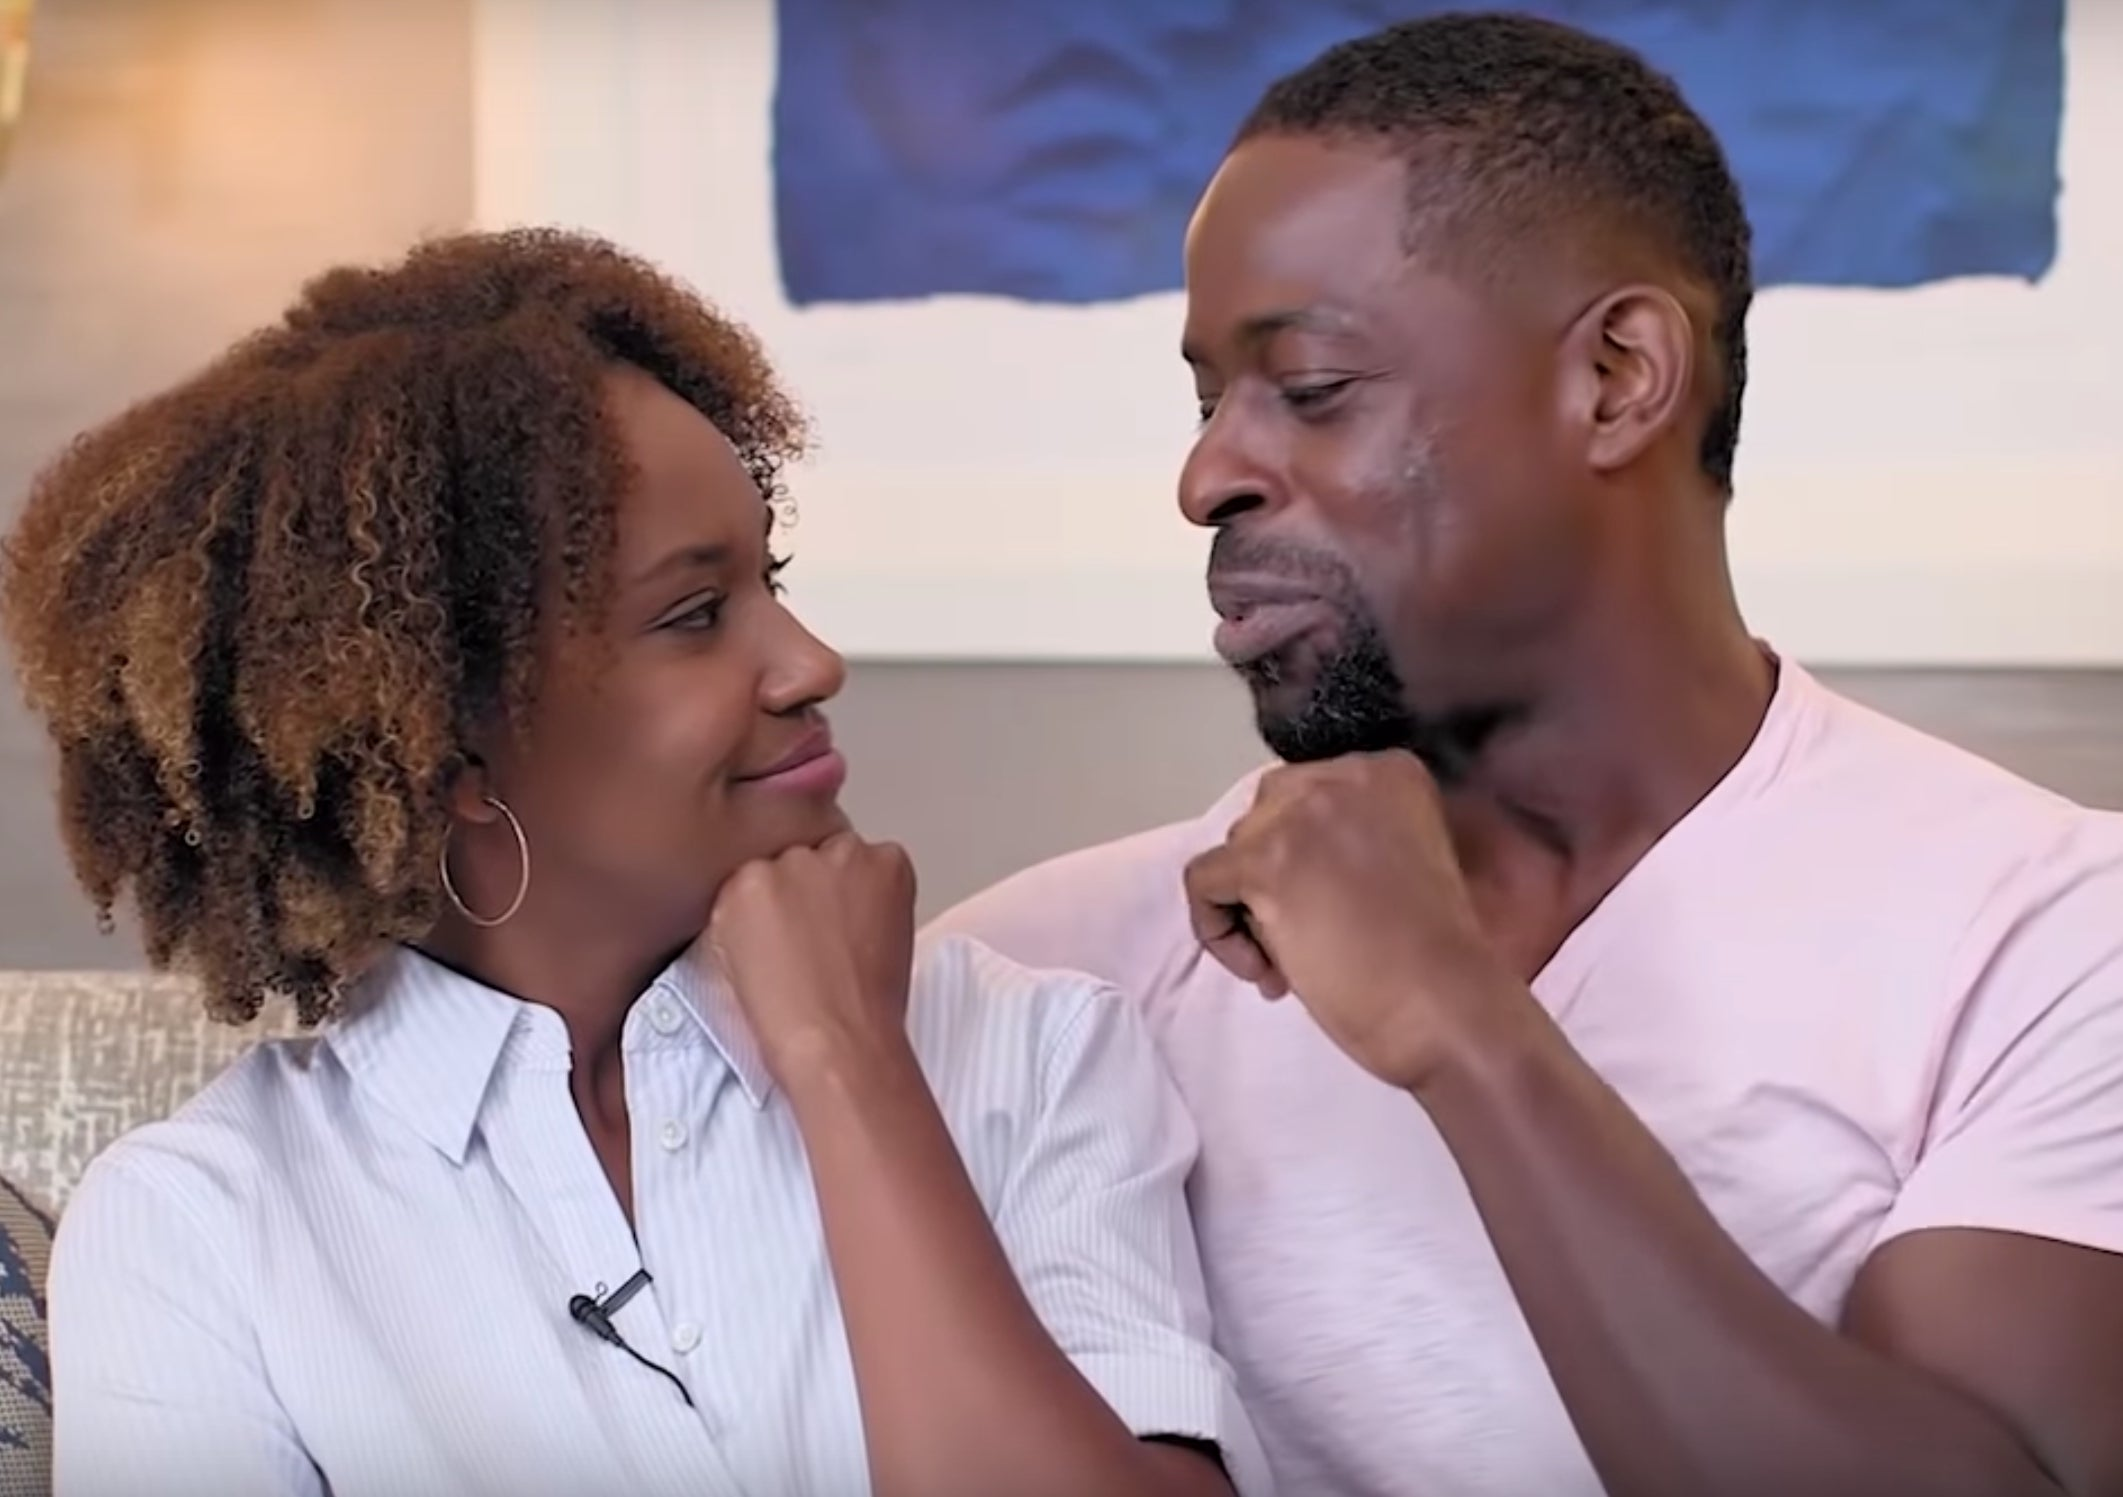 Sterling K. Brown And Ryan Michelle Bathe To Join 'Black Love' Creators For An Intimate Discussion About Their Journey